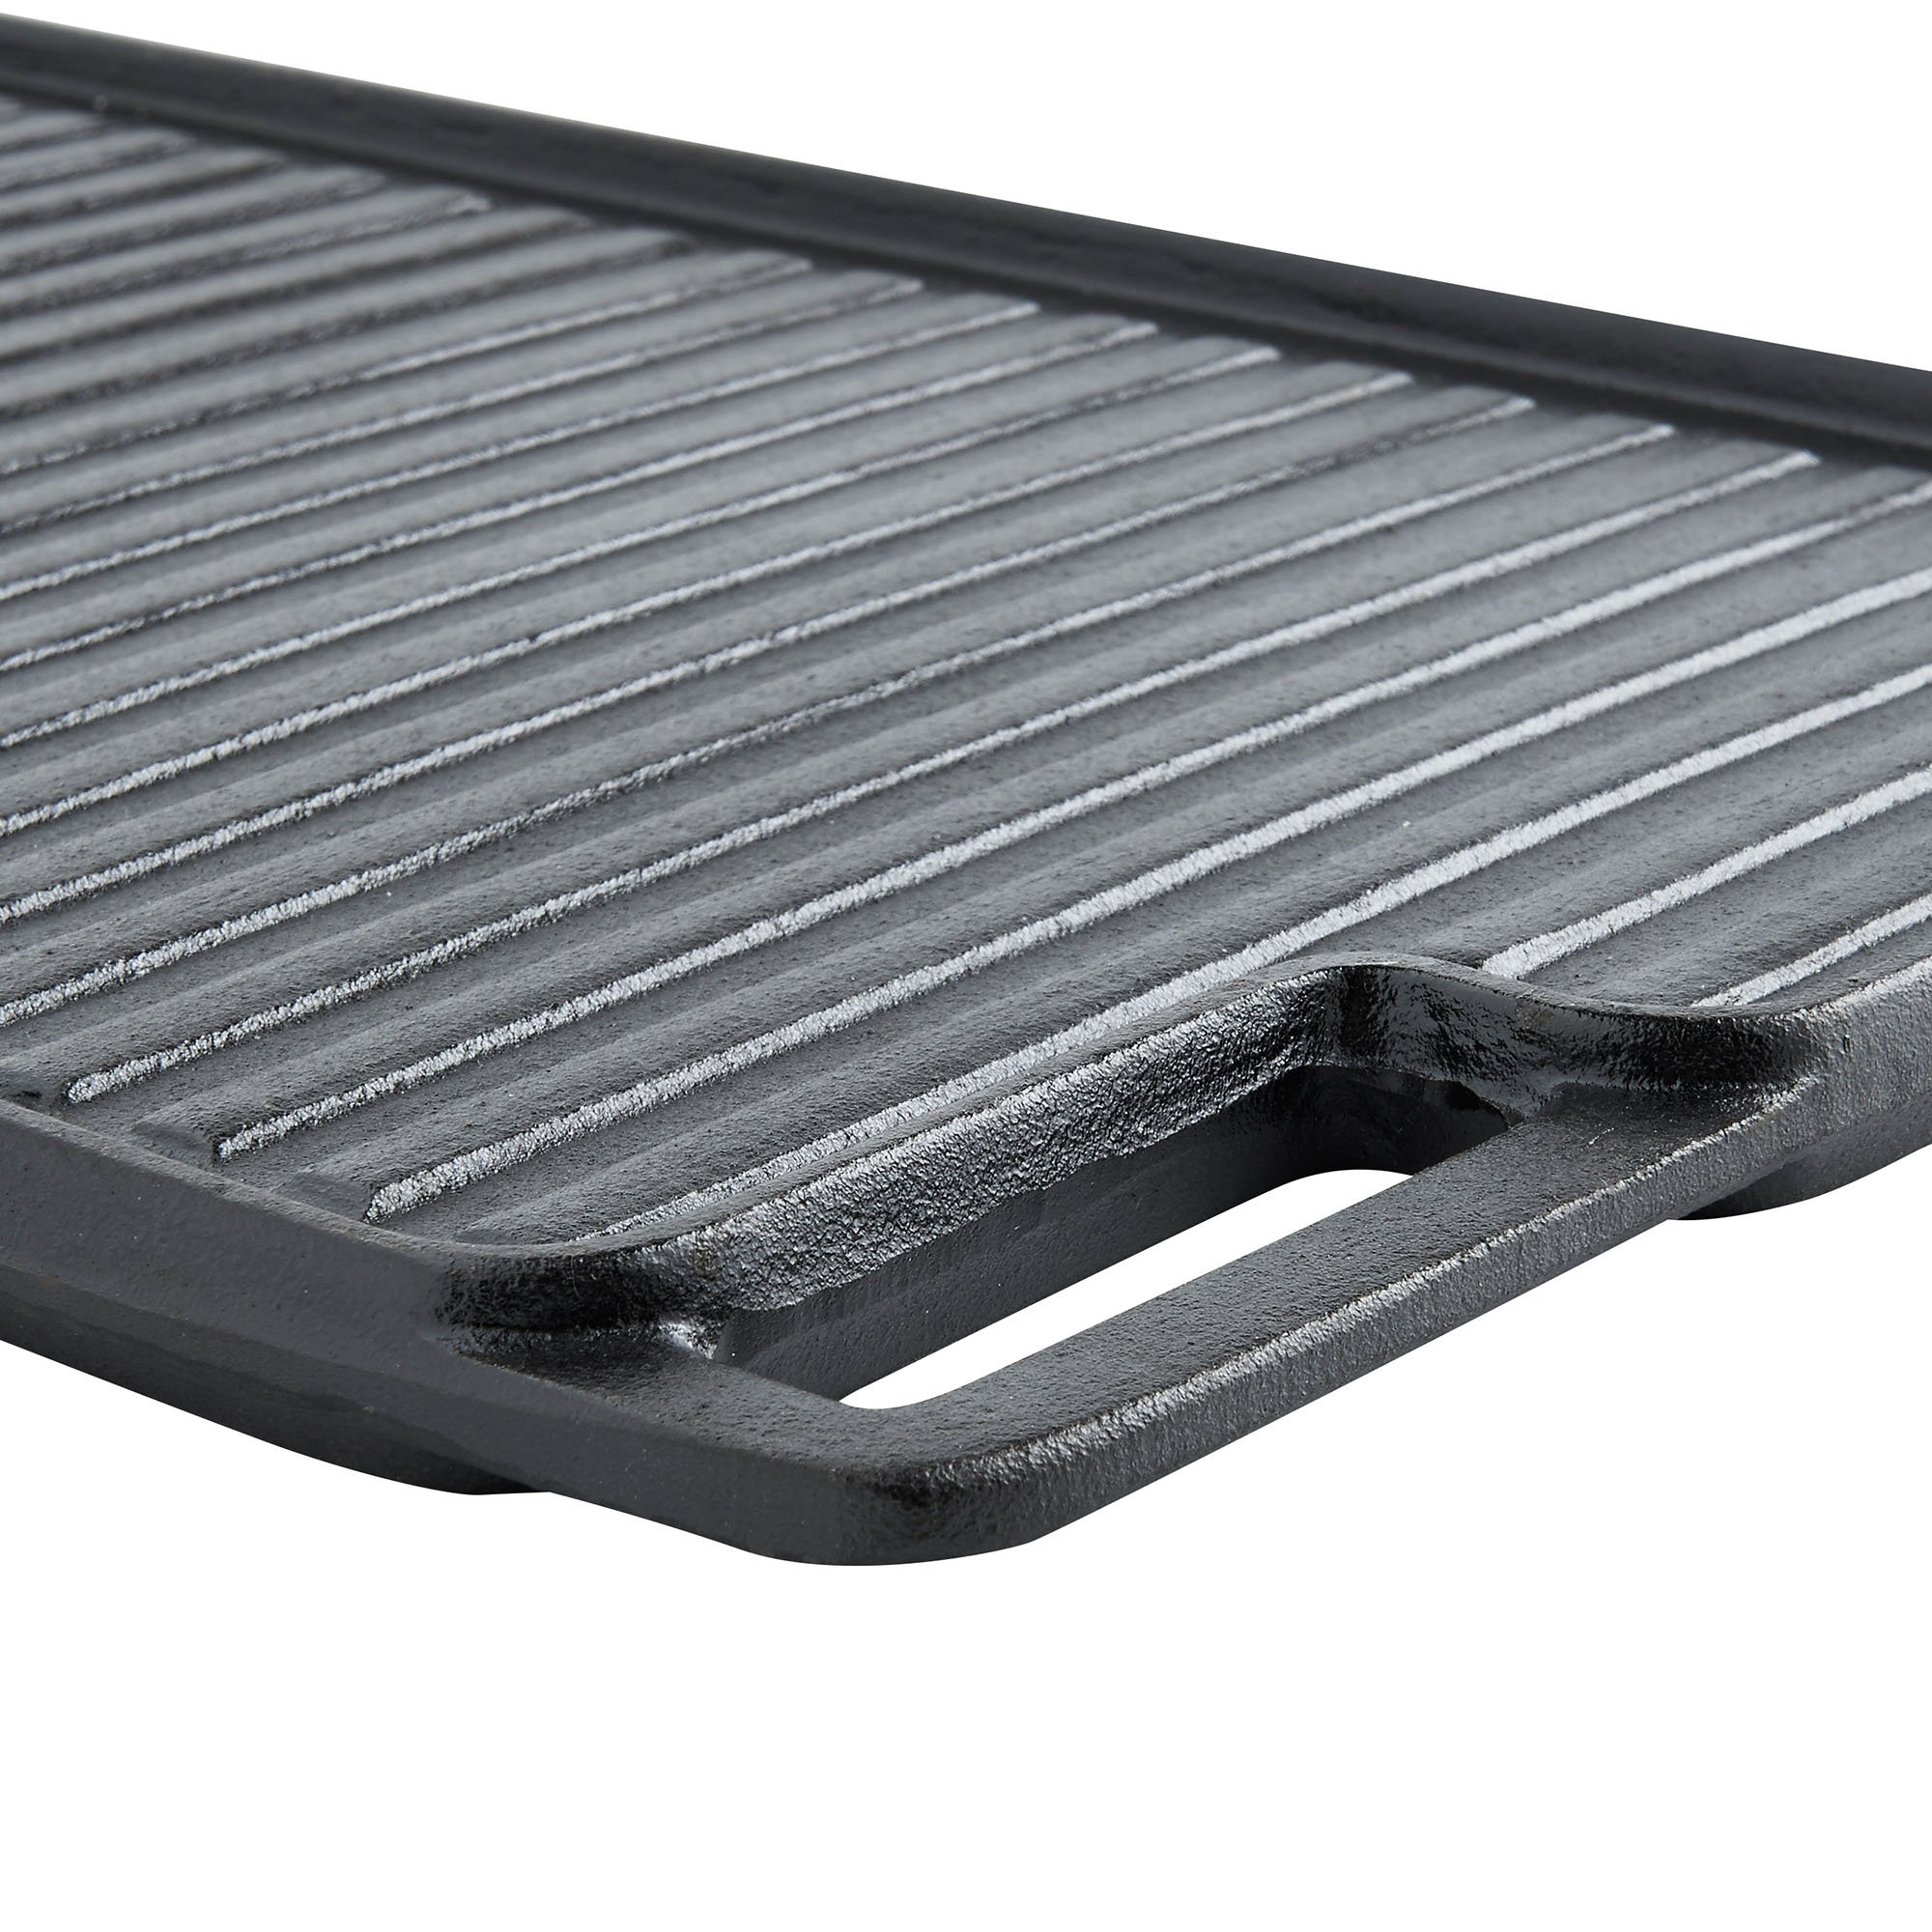 VonShef Black Pre-Seasoned Cast Iron Reversible Griddle Plate & Meat/Bacon Press18 x 10 Inches by VonShef (Image #6)